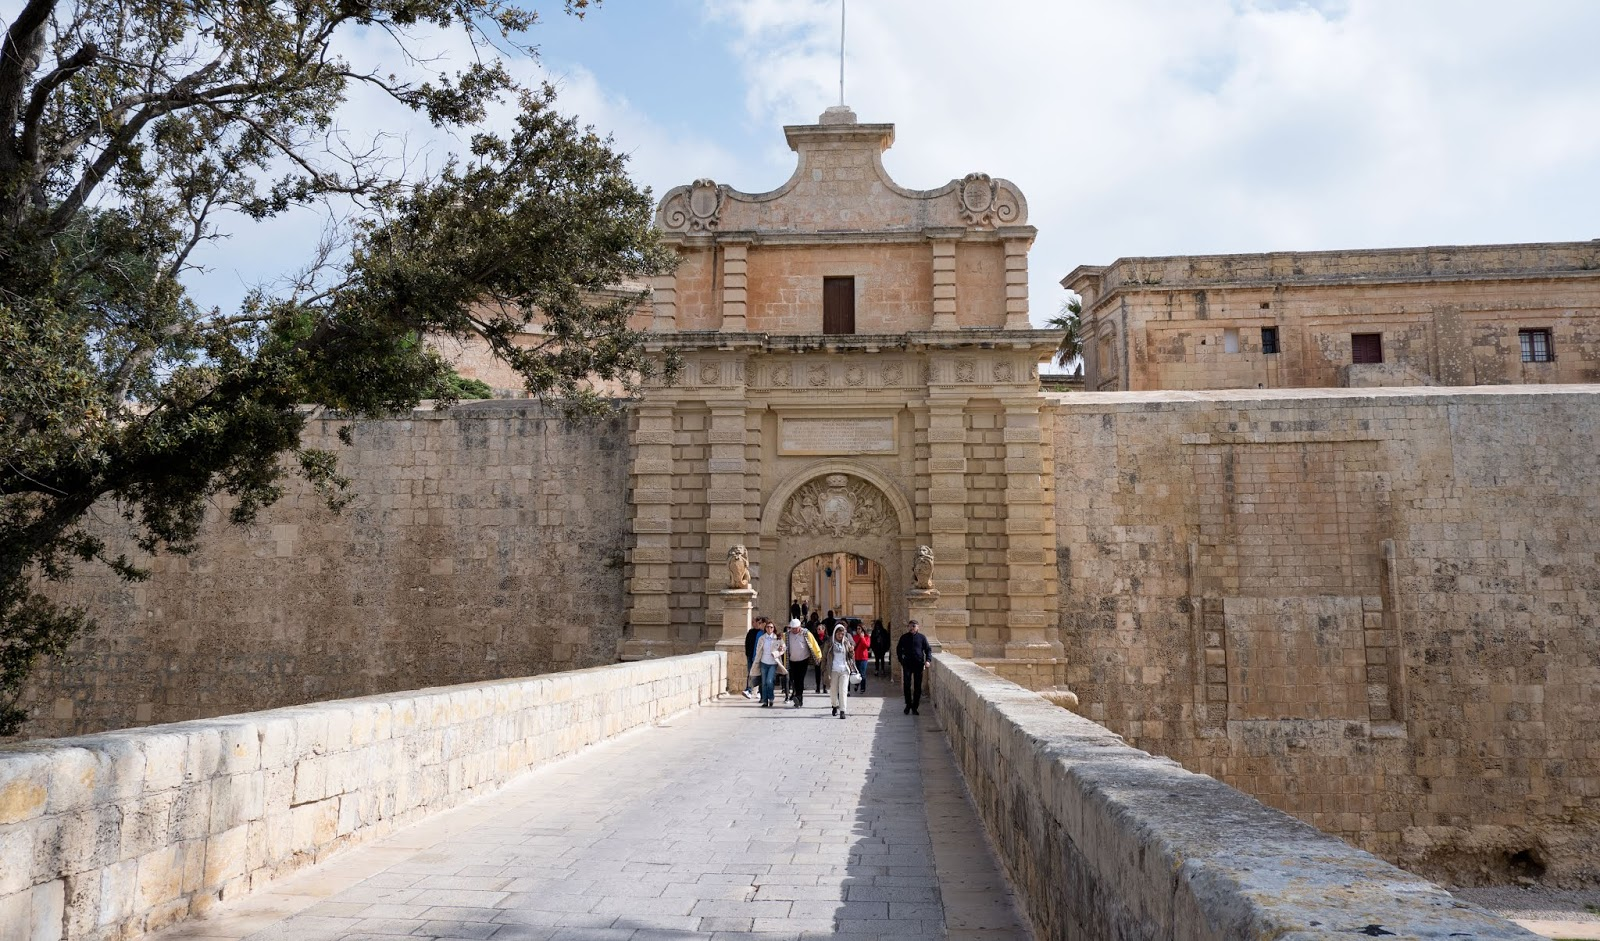 Mdina: Malta's walled city